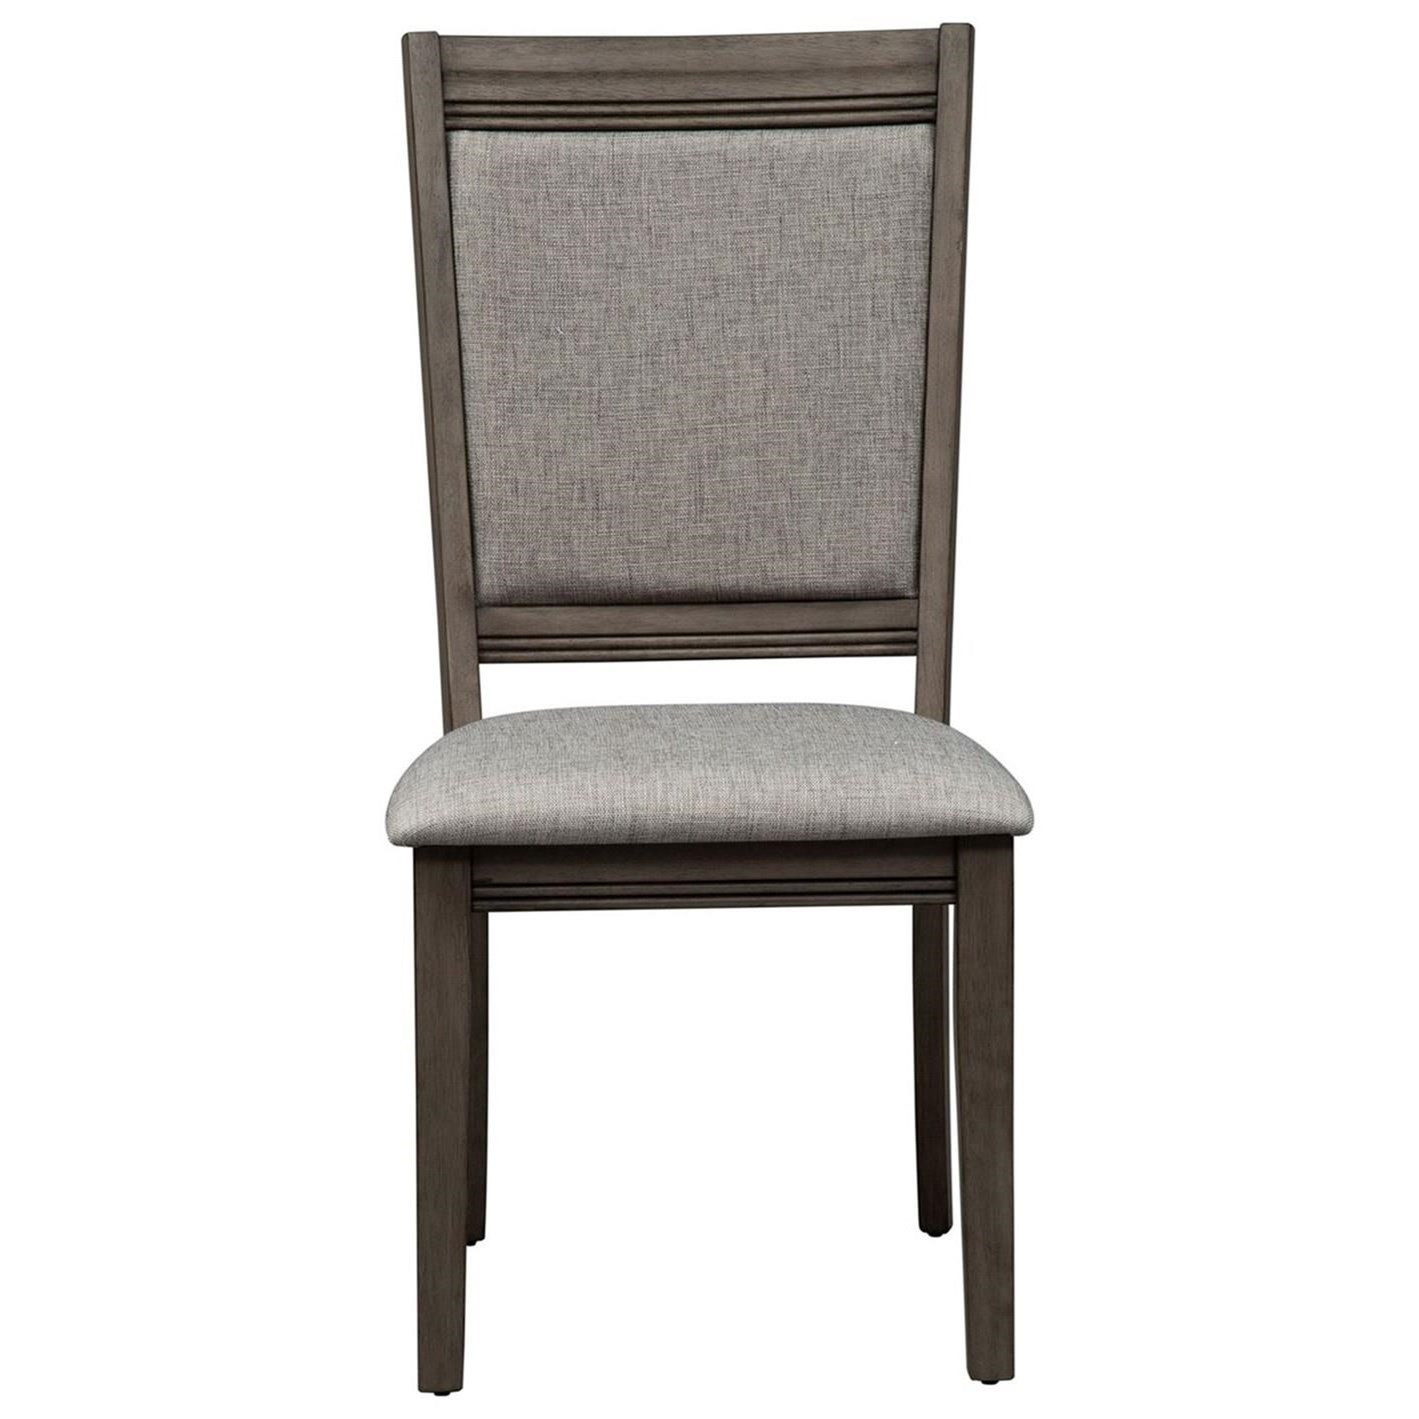 Tanners Creek Upholstered Side Chair by Libby at Walker's Furniture